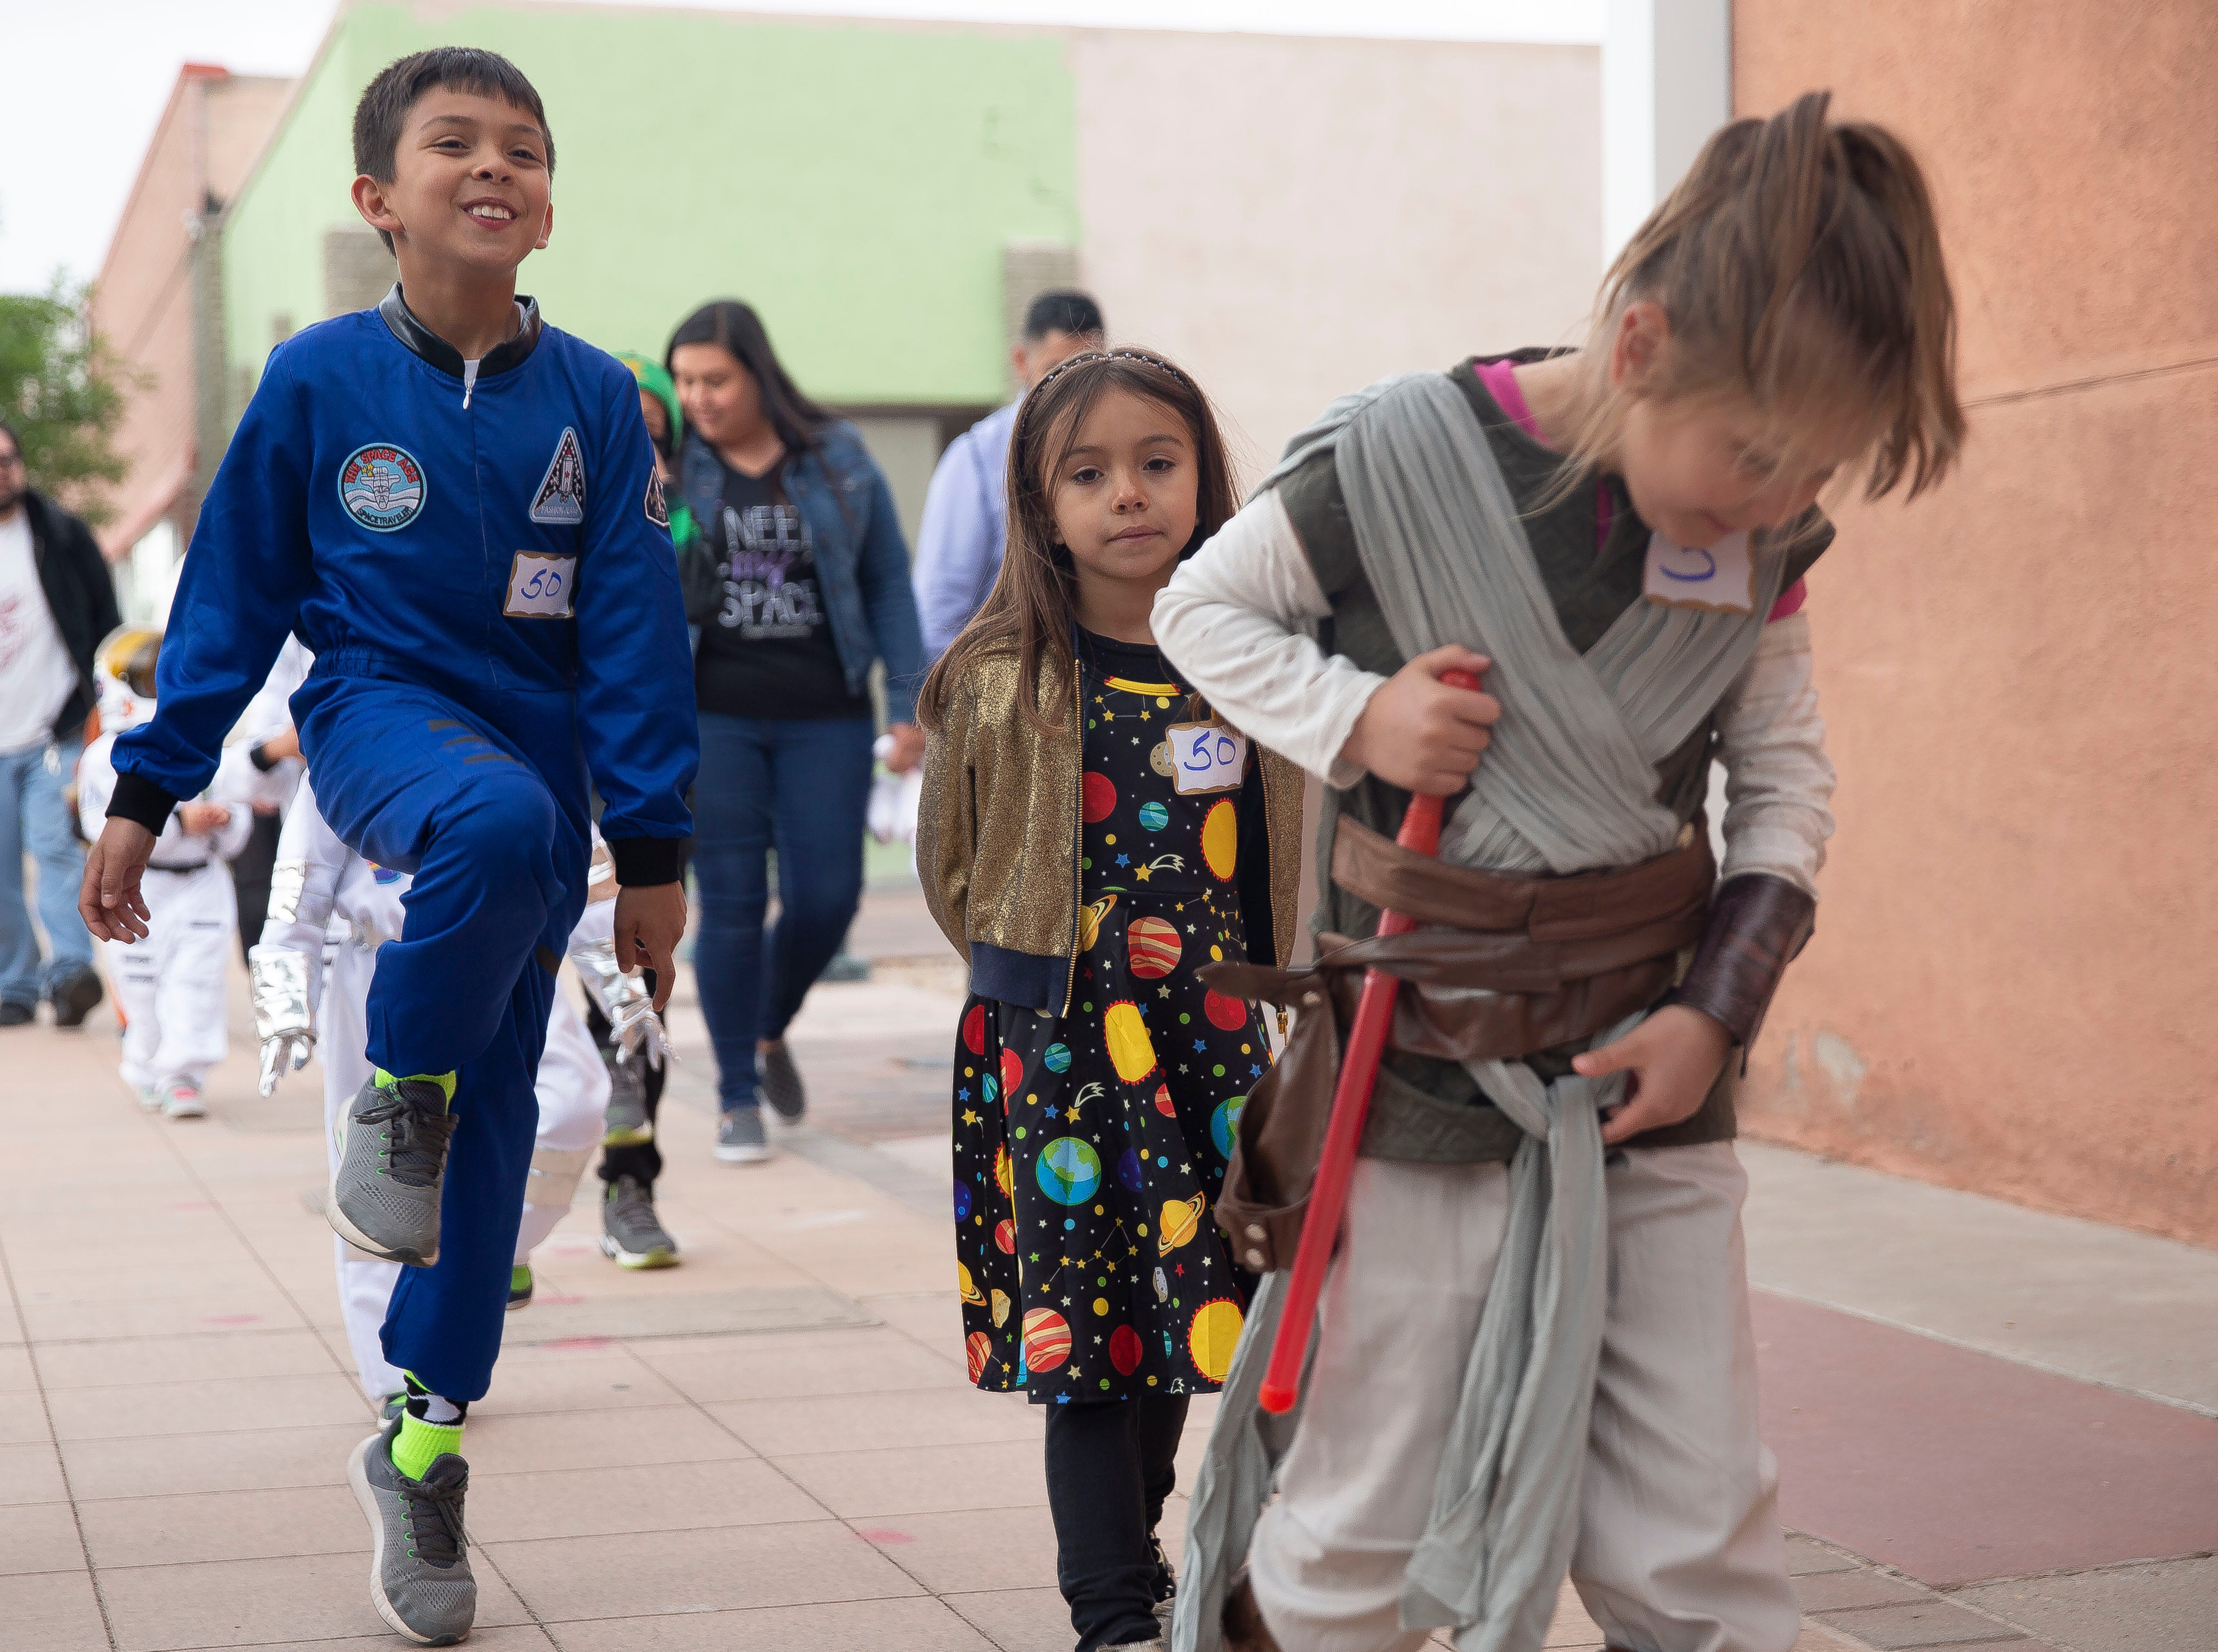 Children participate in the second Space Walk on Friday April 12, 2019, in downtown Las Cruces. The kids are pretending to walk in zero gravity.